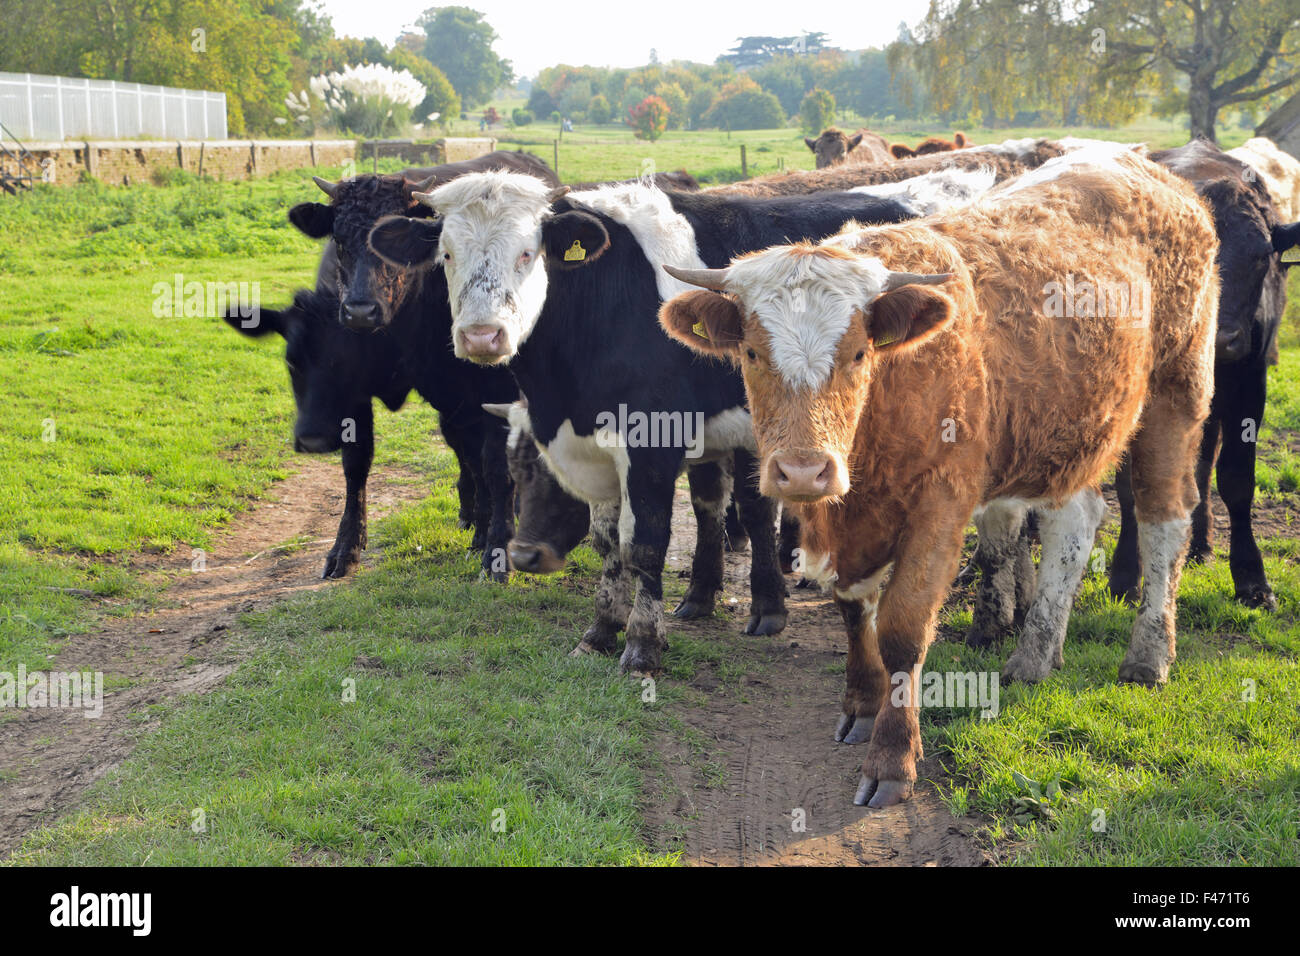 cattle in field in Northamptonshire United Kingdom - Stock Image